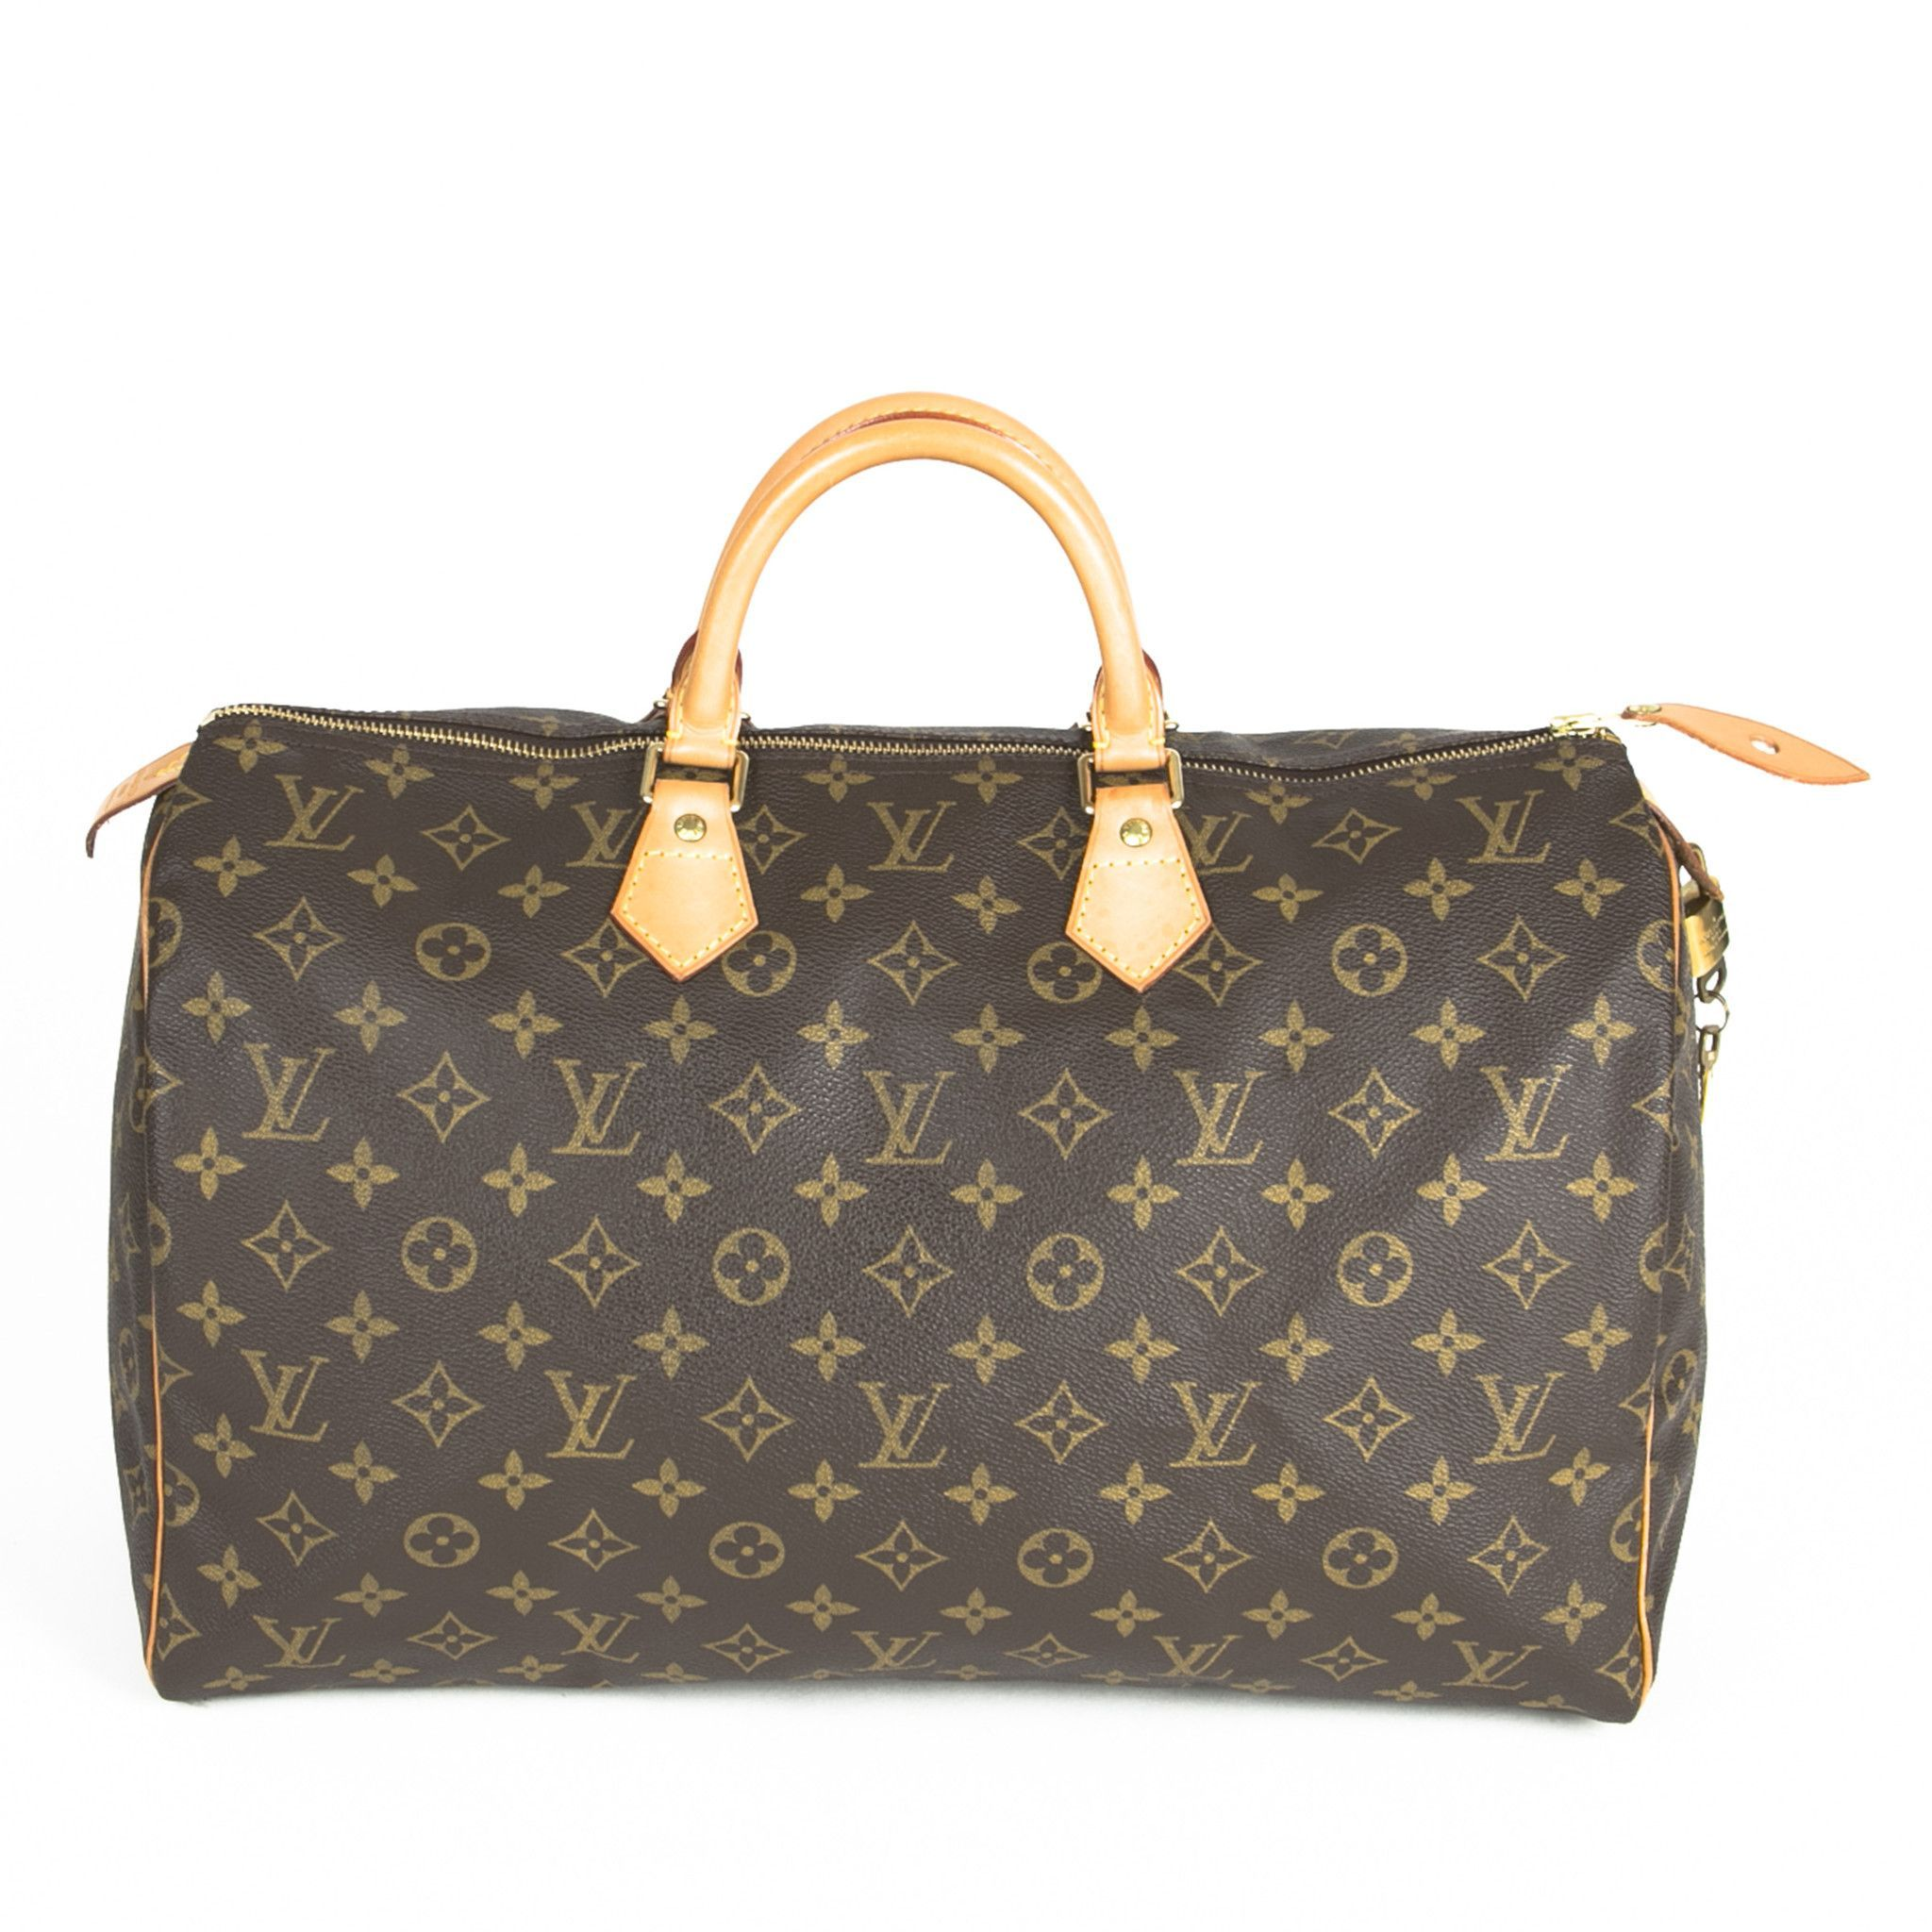 Louis Vuitton Sdy 40 Authentic Pre Owned